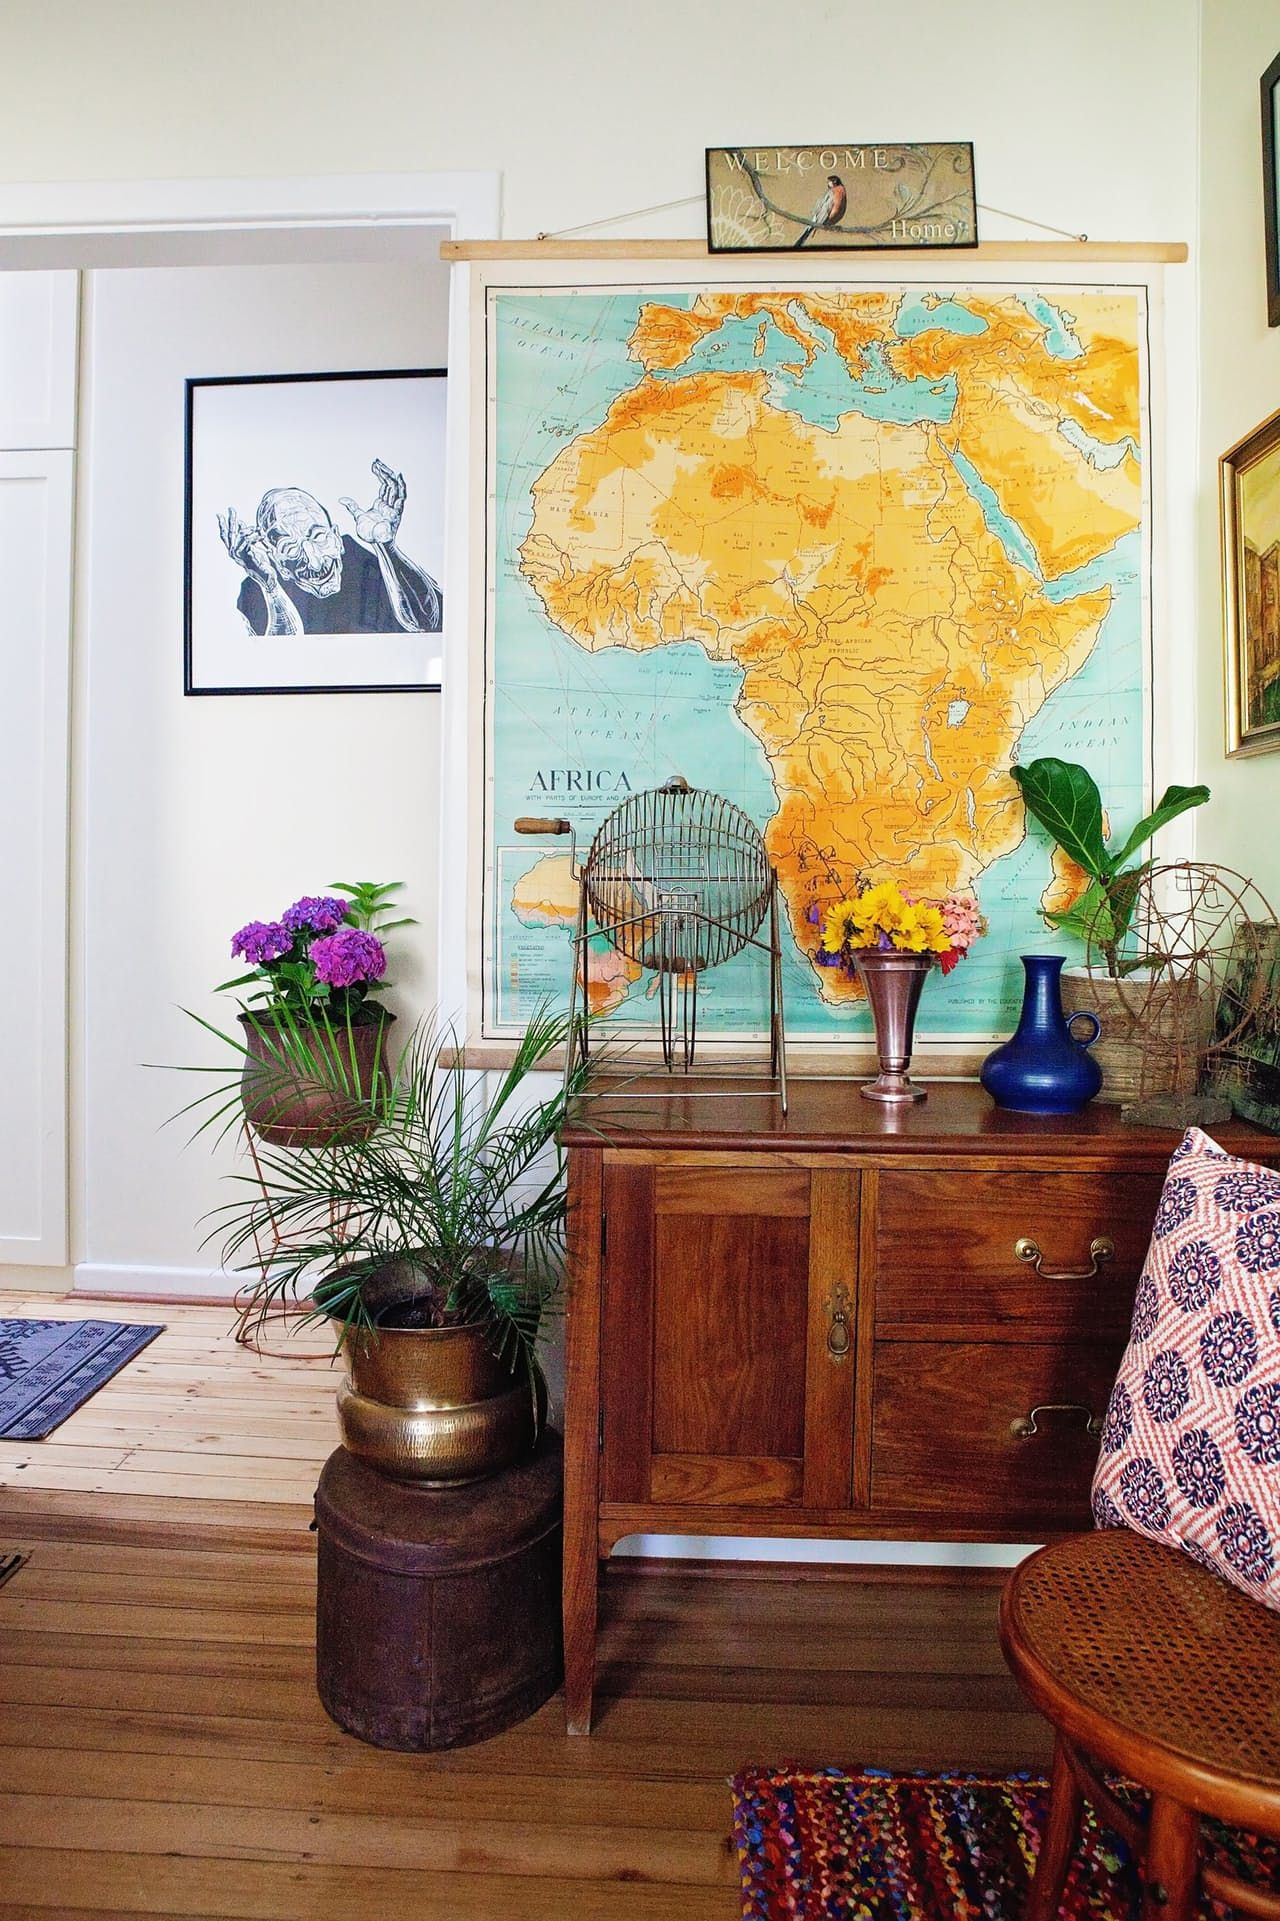 stacked, eclectic wall art helps create a bohemian vibe | the